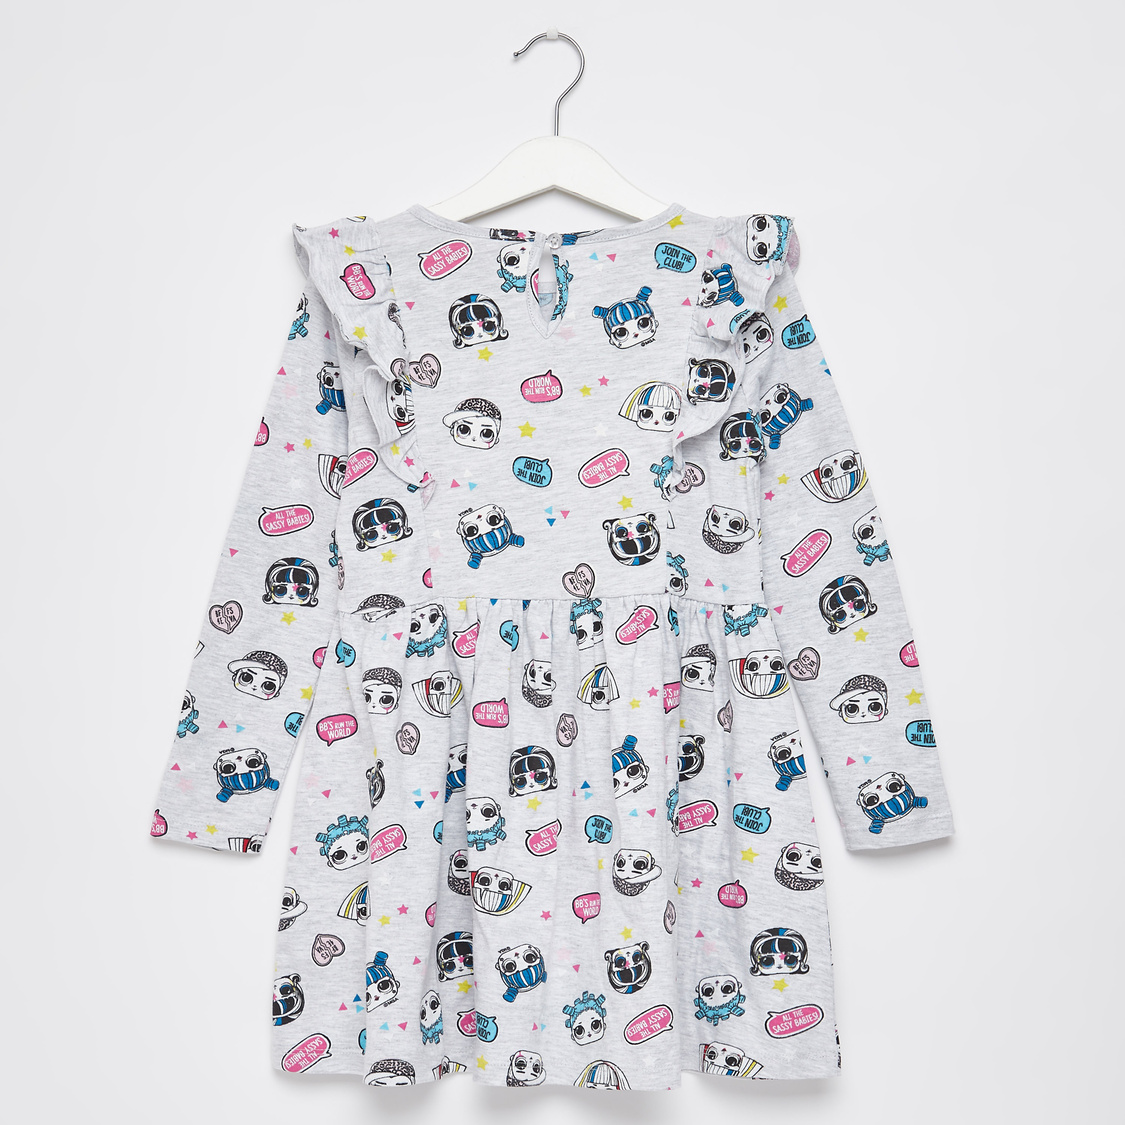 L.O.L Surprise! Print Knee Length Dress with Round Neck and Long Sleeves